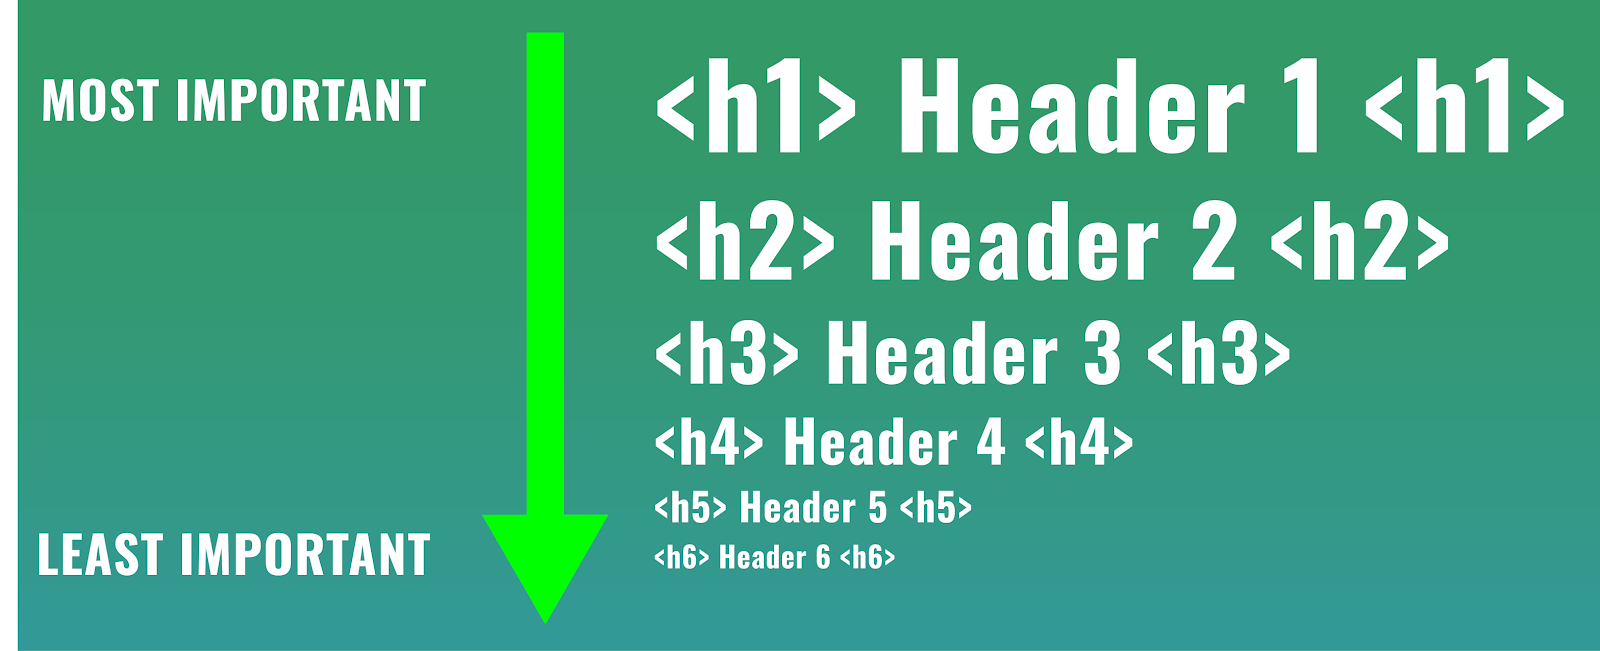 Heirarchy of h1, h2, h3, h4, h5, h6 tags